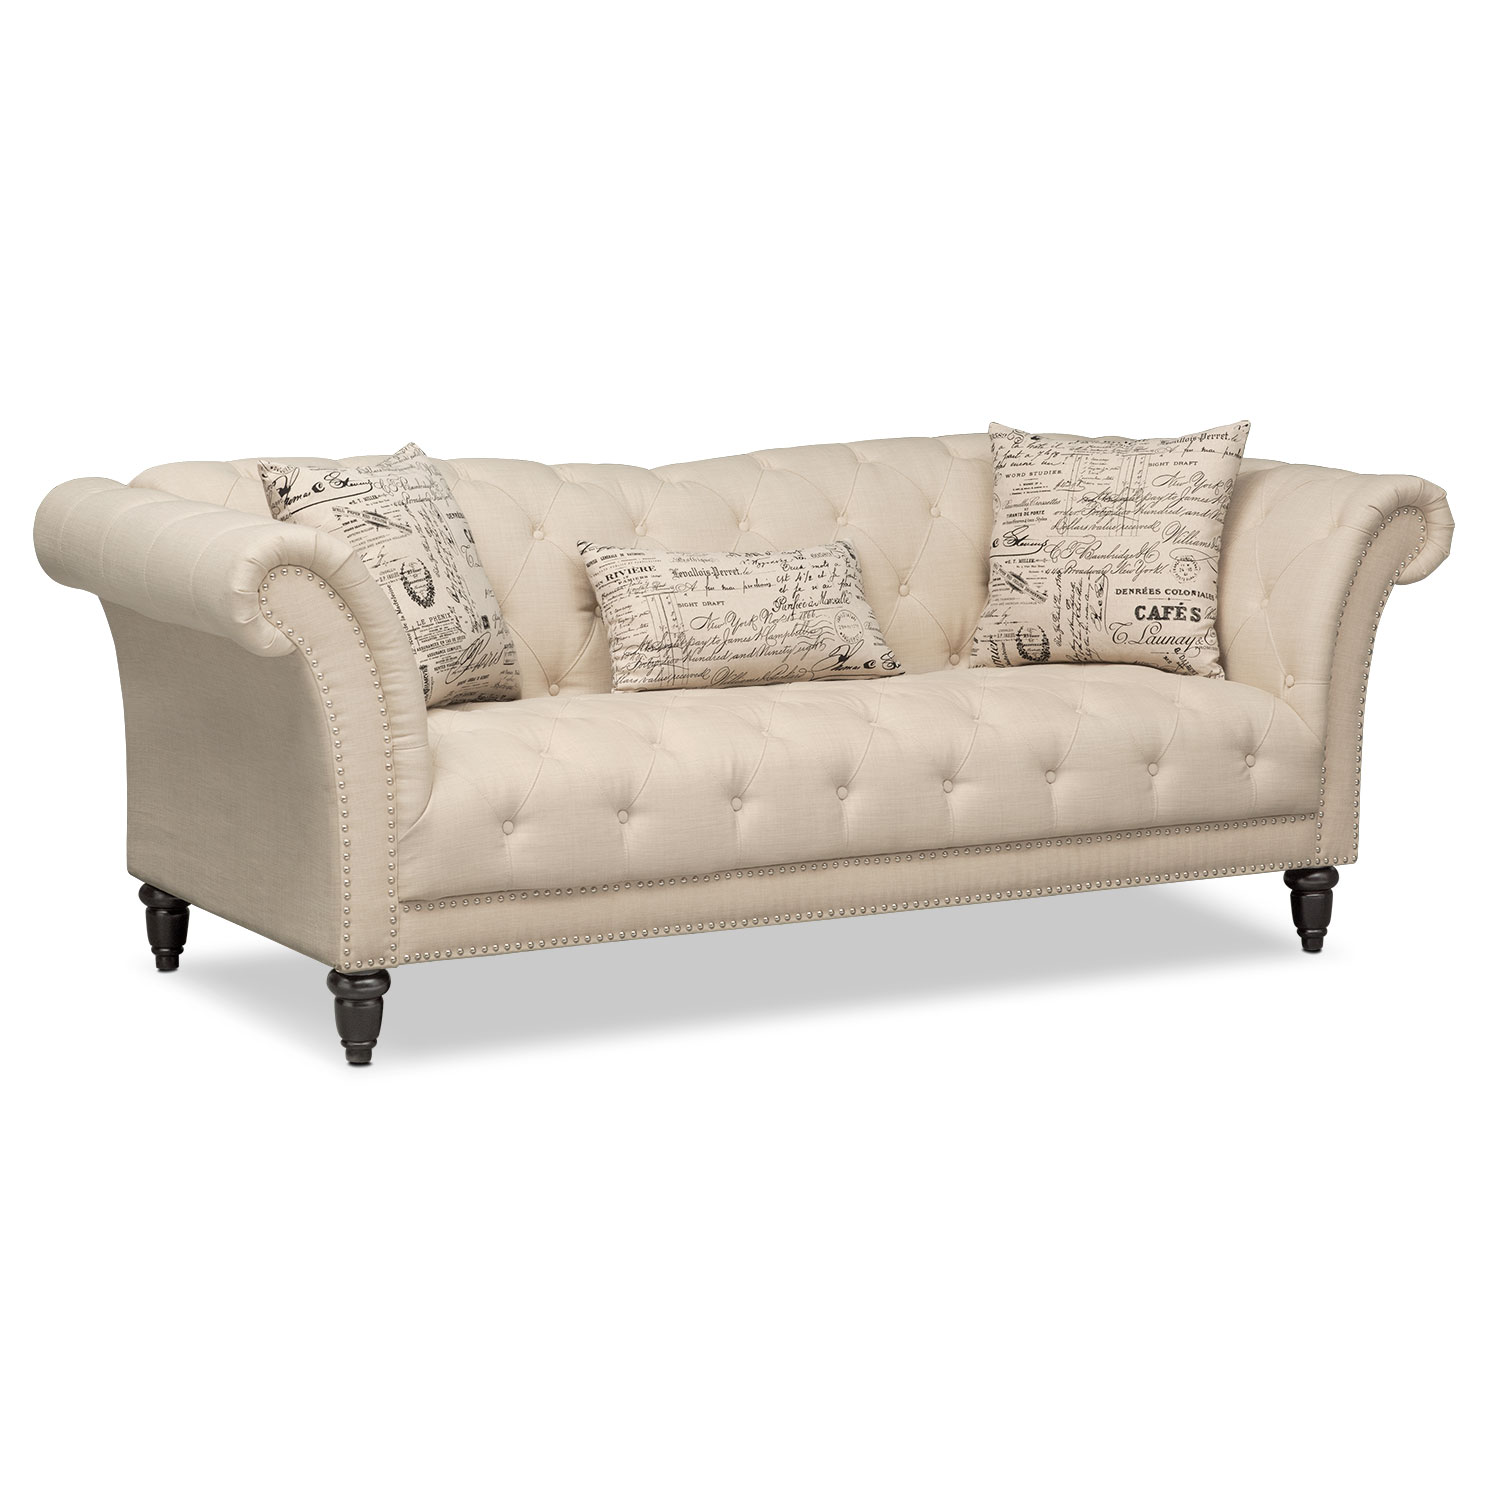 Marisol Sofa Value City Furniture And